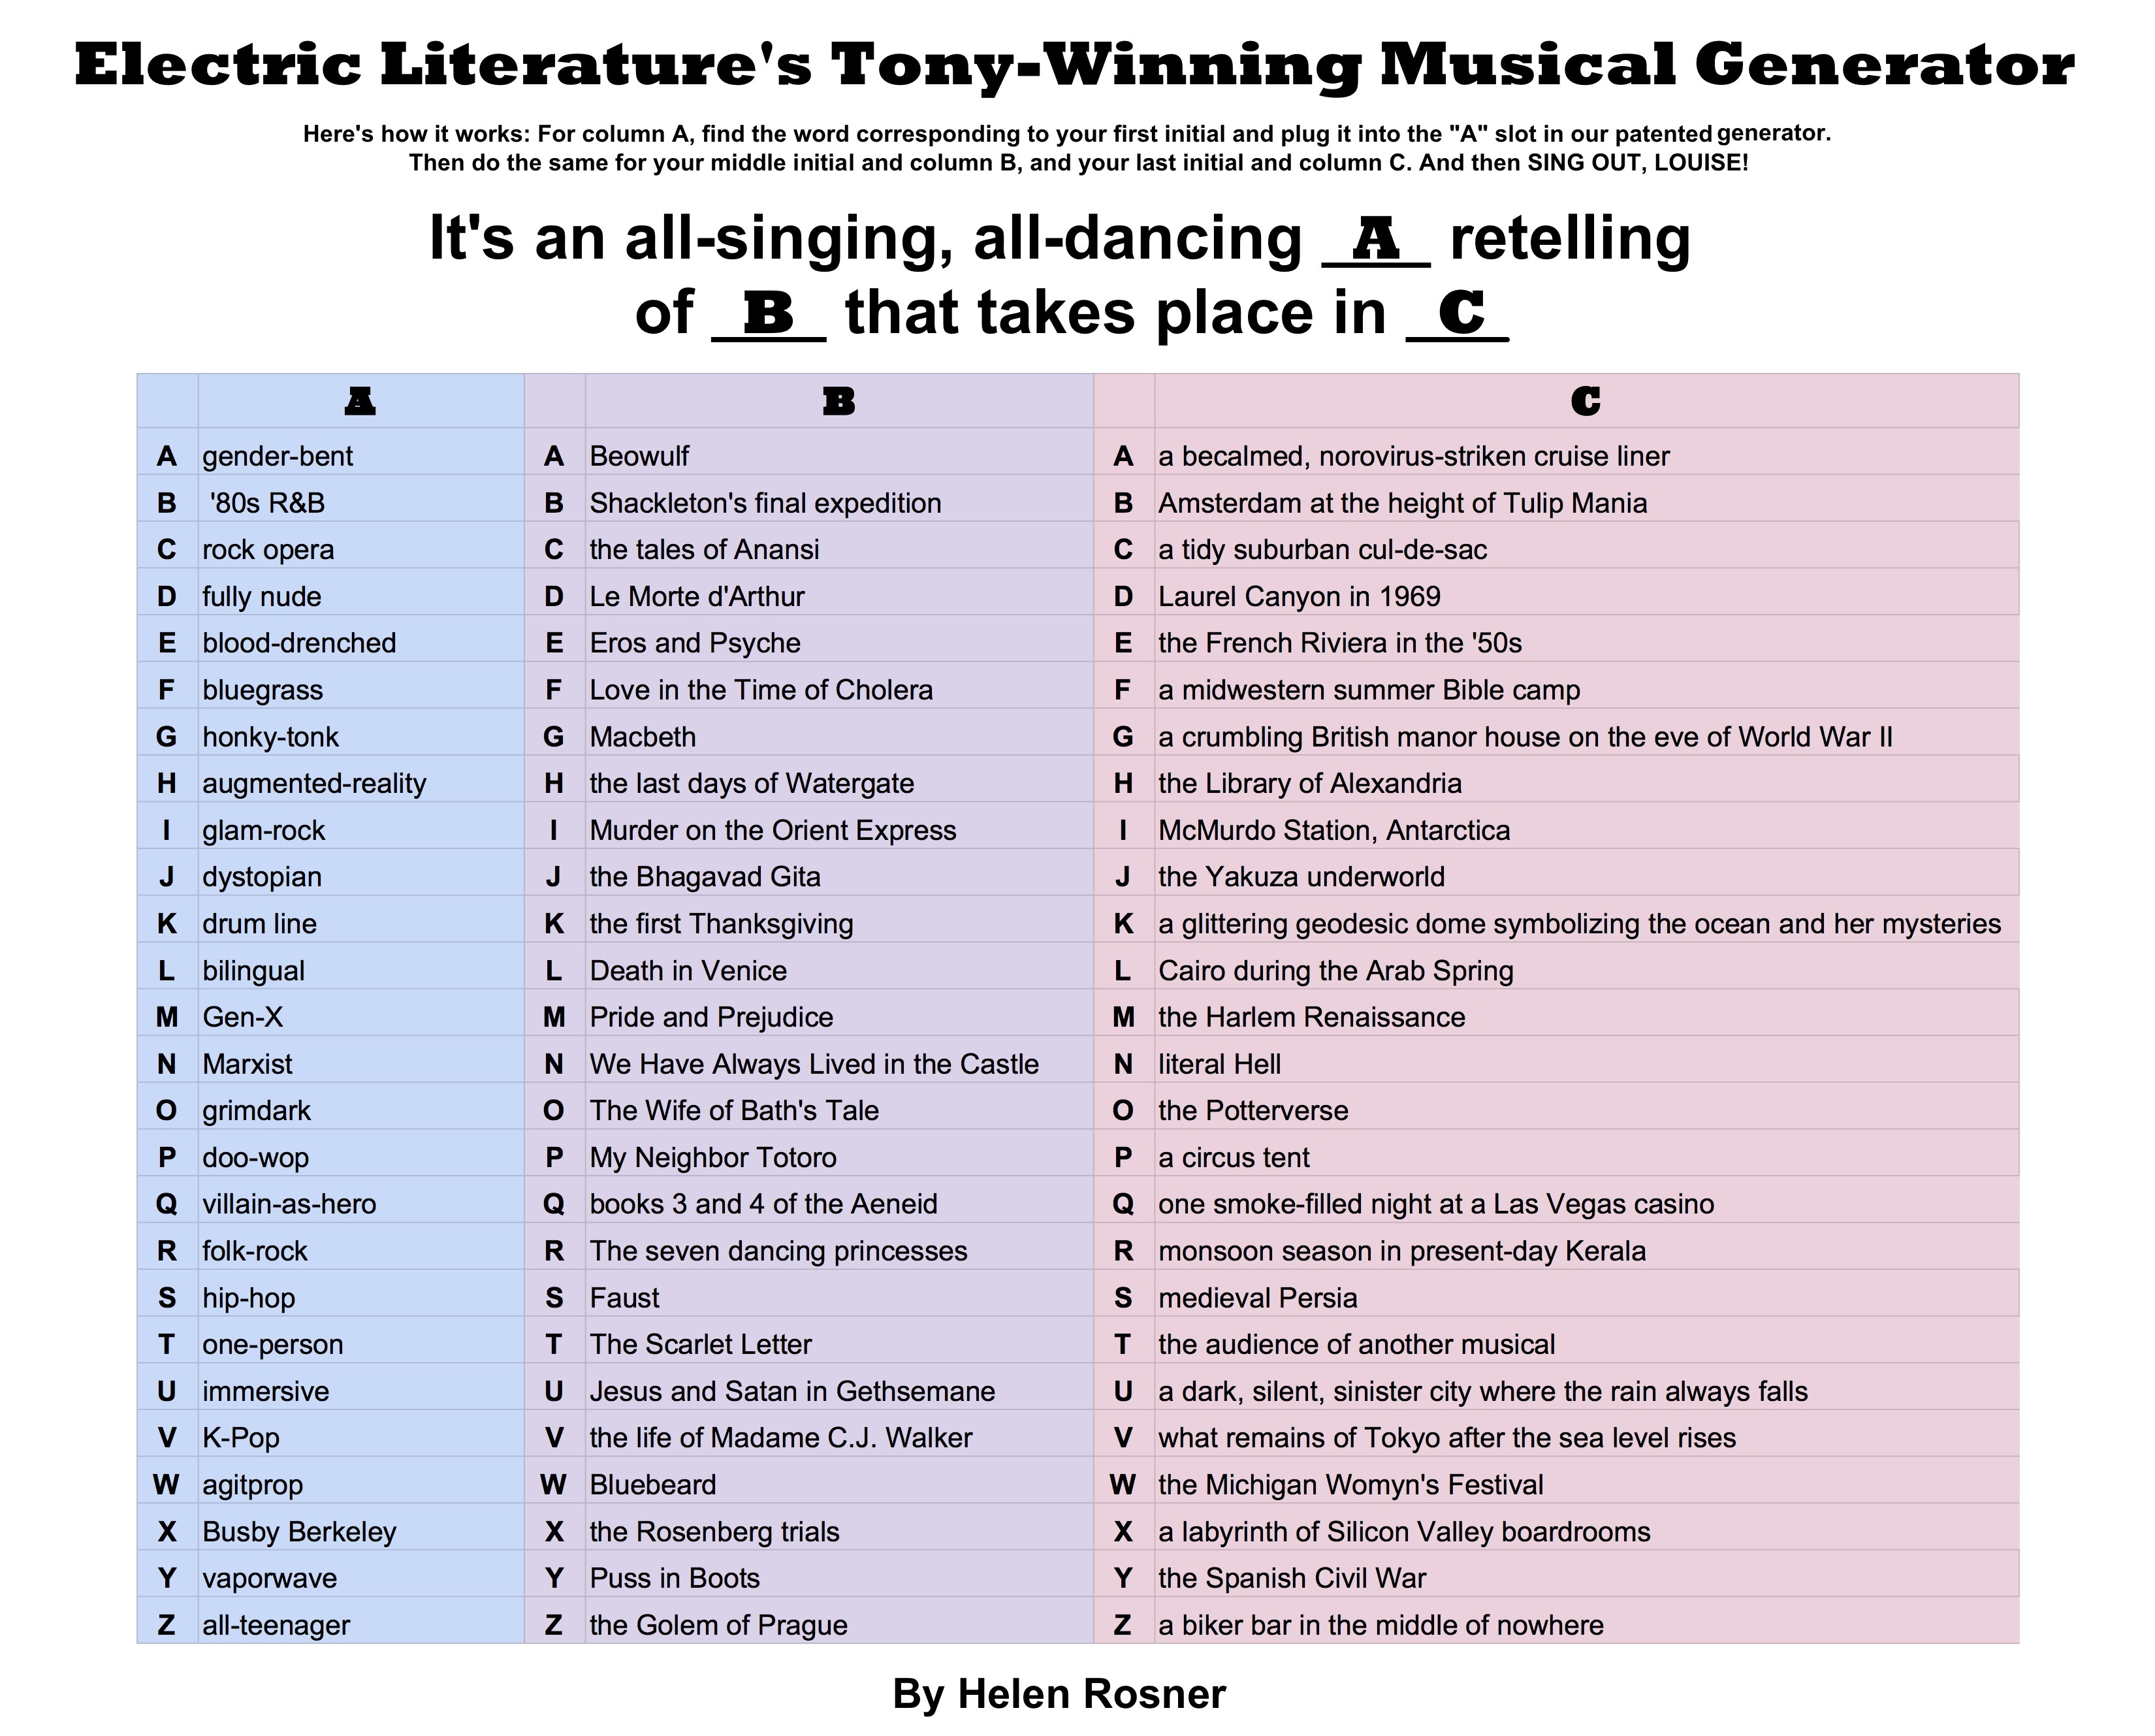 INFOGRAPHIC: Word Counts of Famous Books - Electric Literature